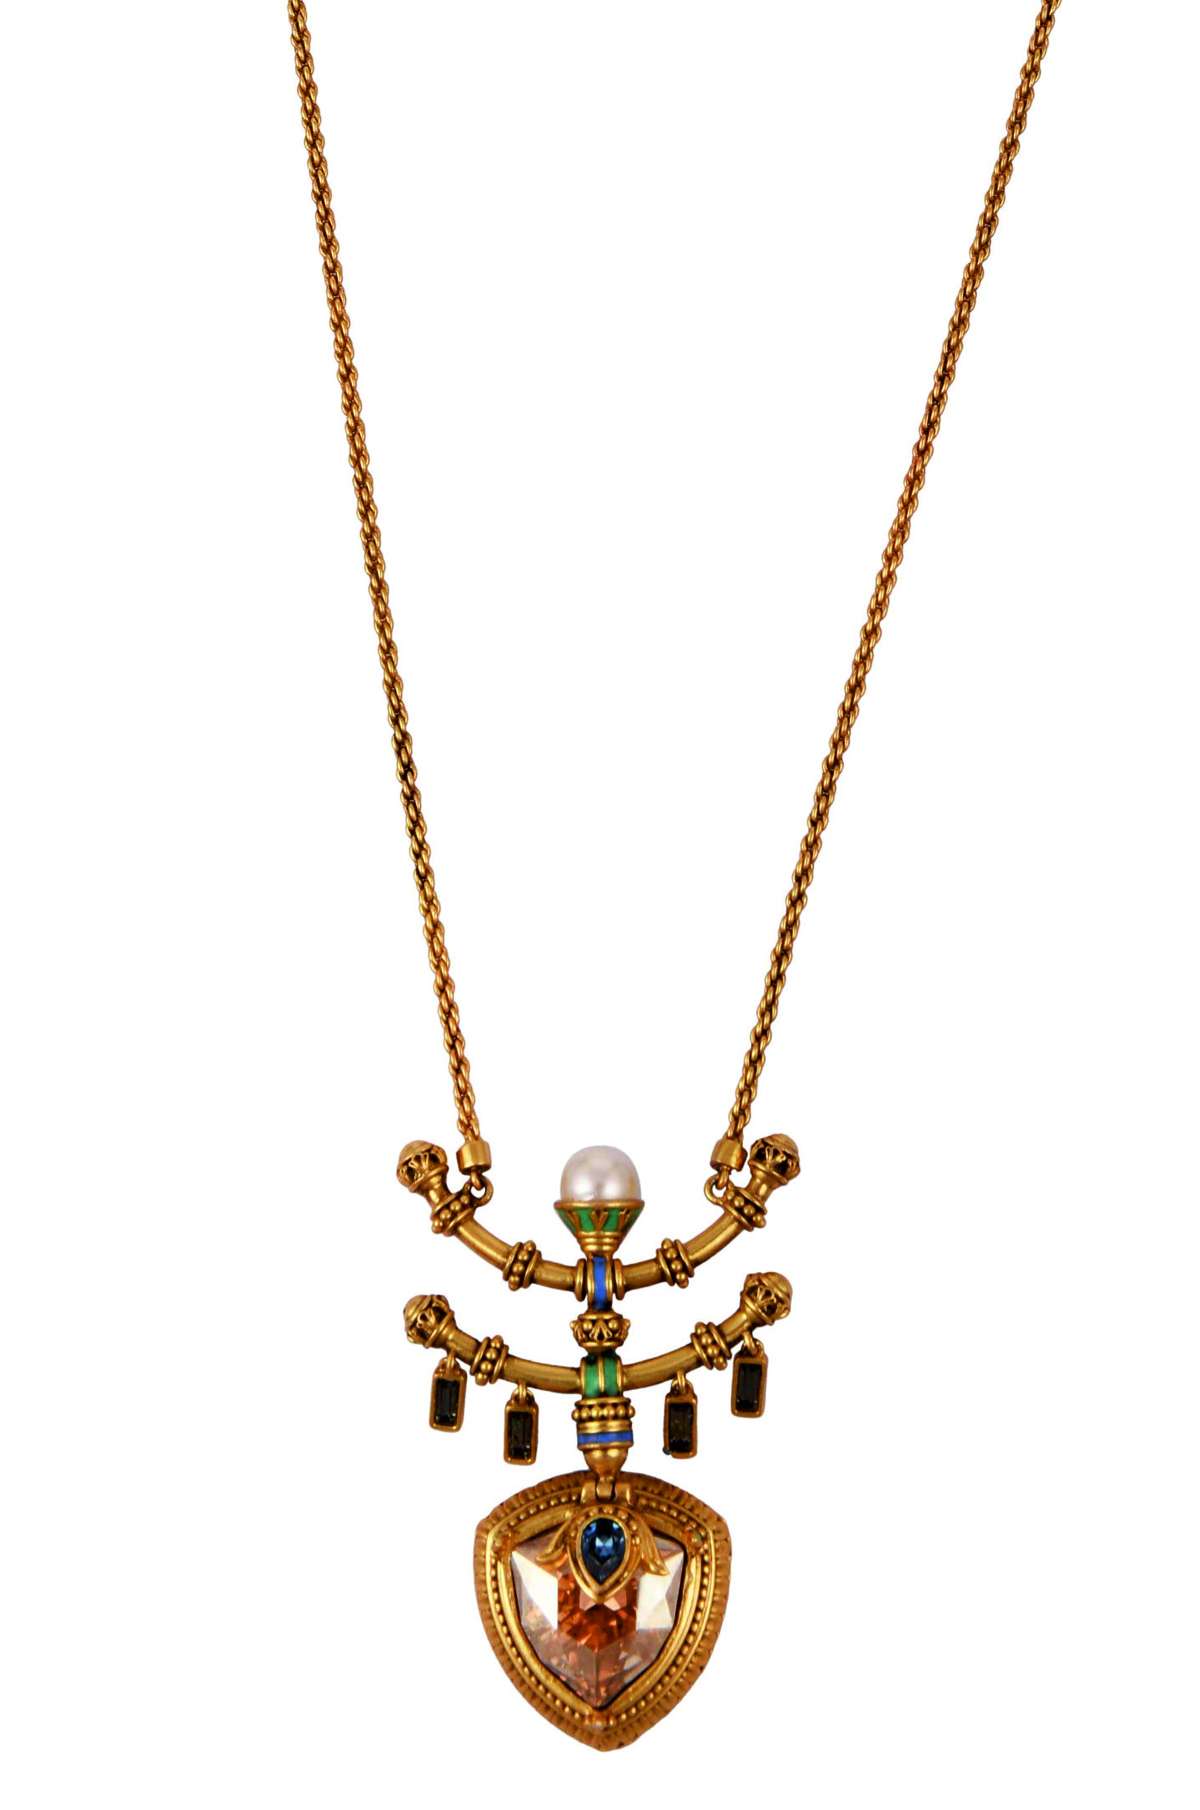 Baroque Layered Necklace